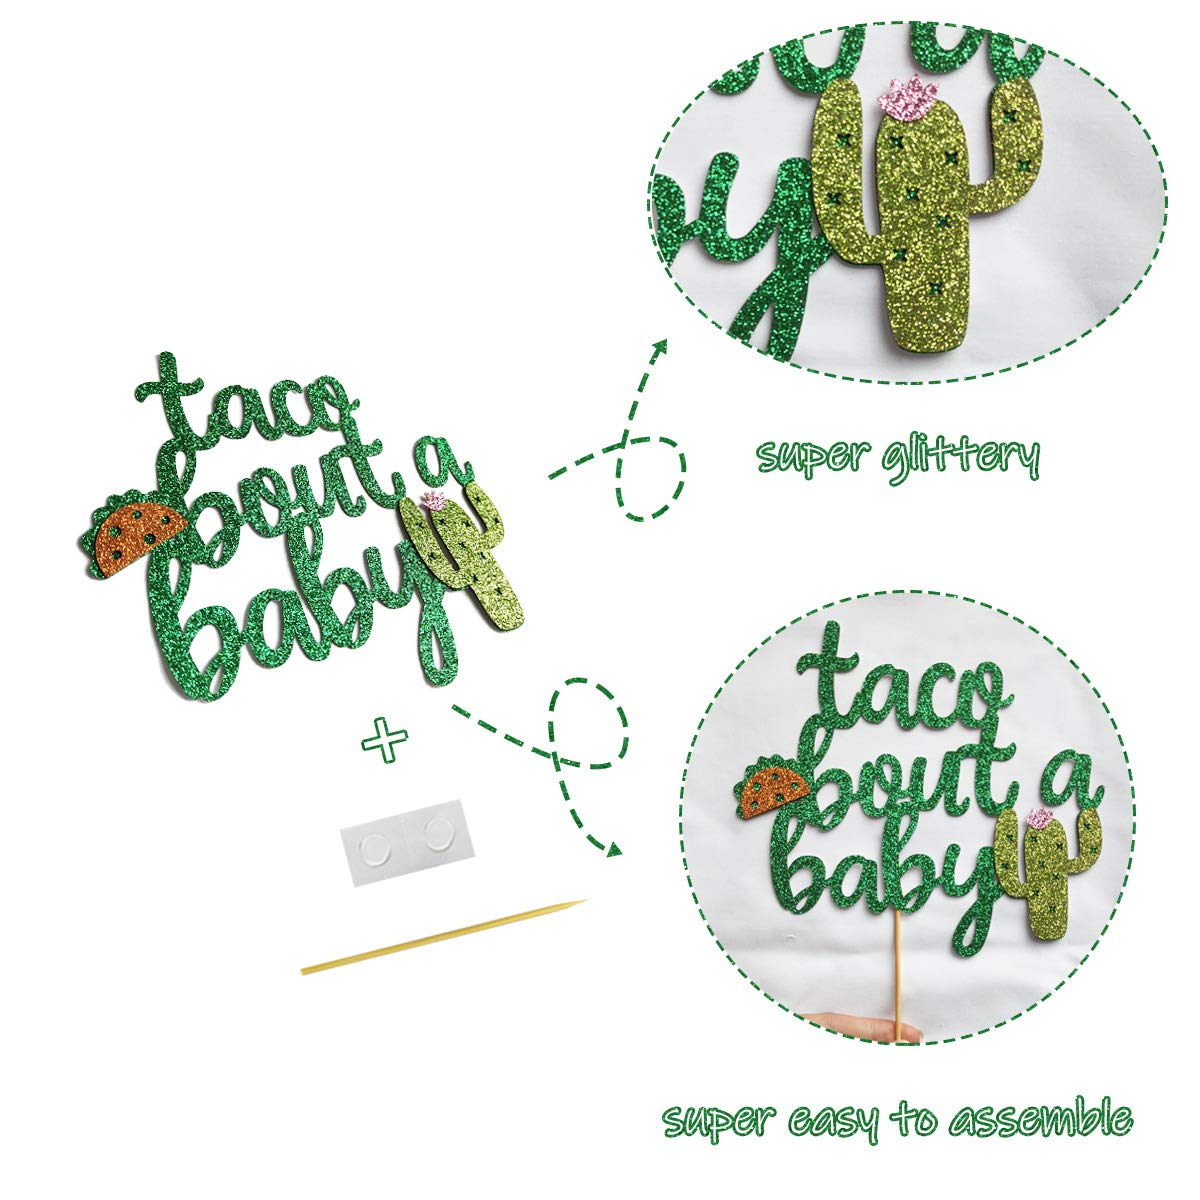 Finseng Taco Bout A Baby Gold Glitter Banner Sign Garland for Mexican Fiesta Themed Baby Shower Decorations by Glamoncha (Image #3)